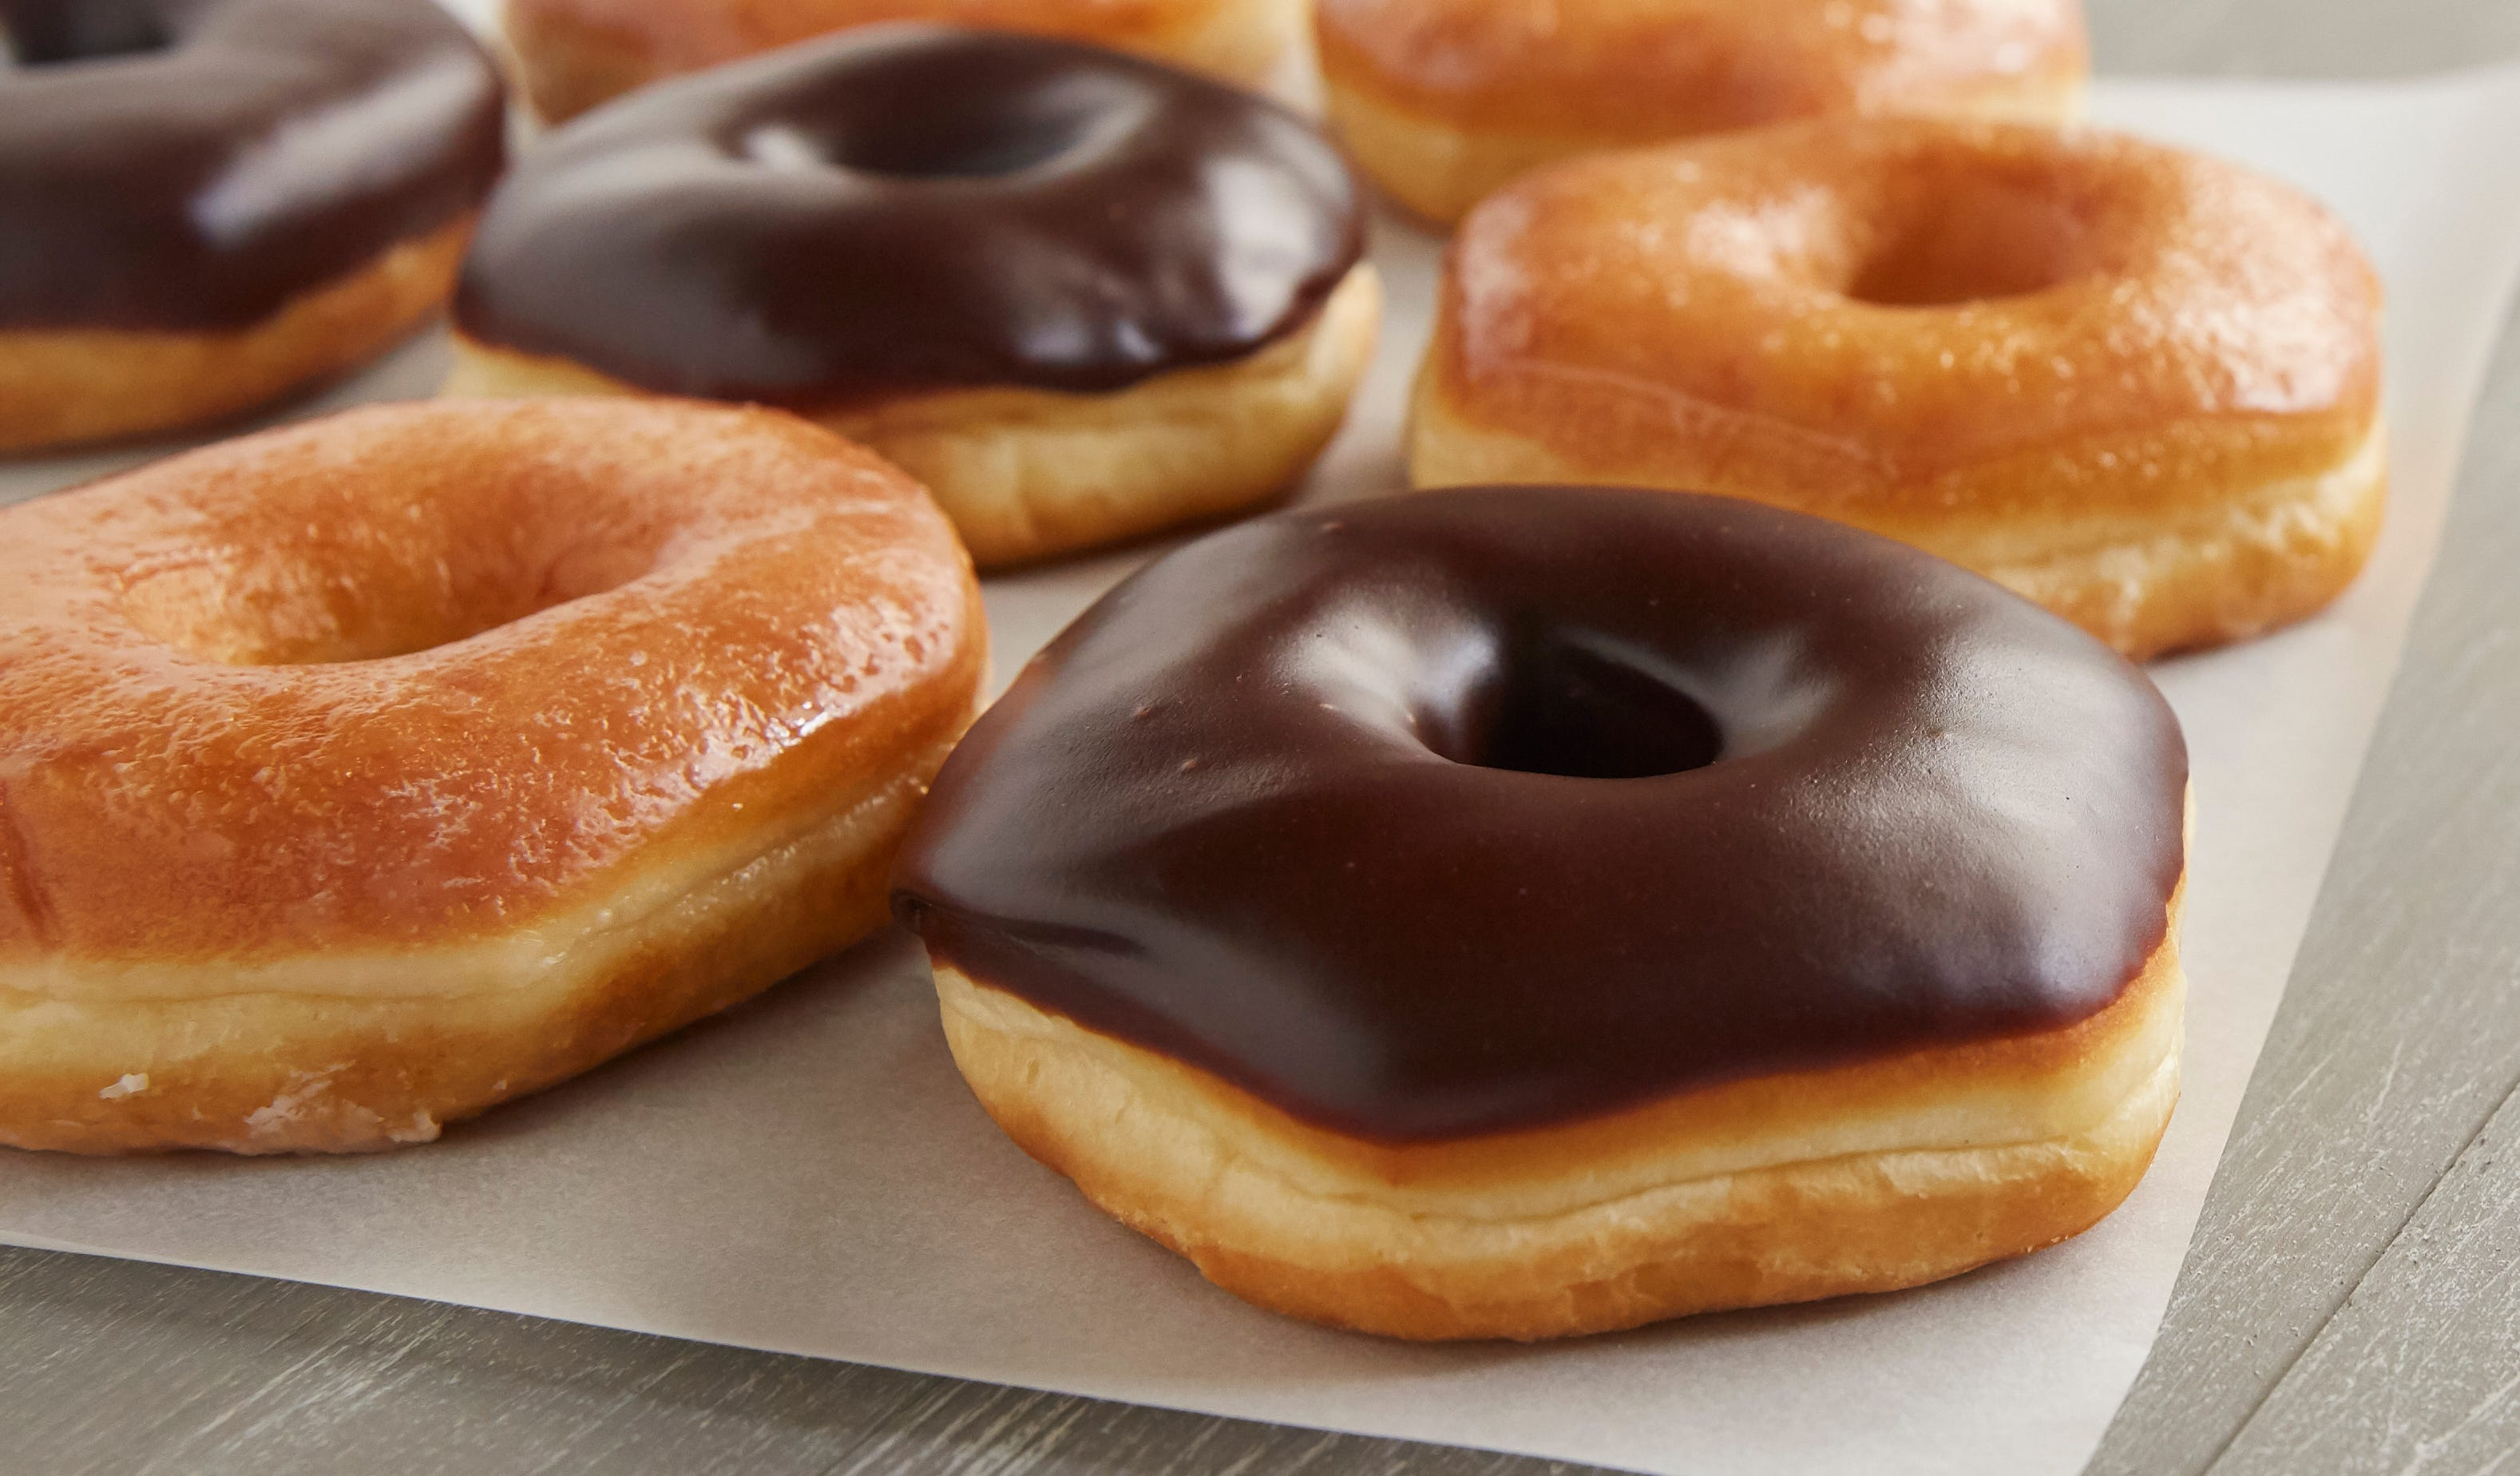 Get free doughnuts and deals June 7